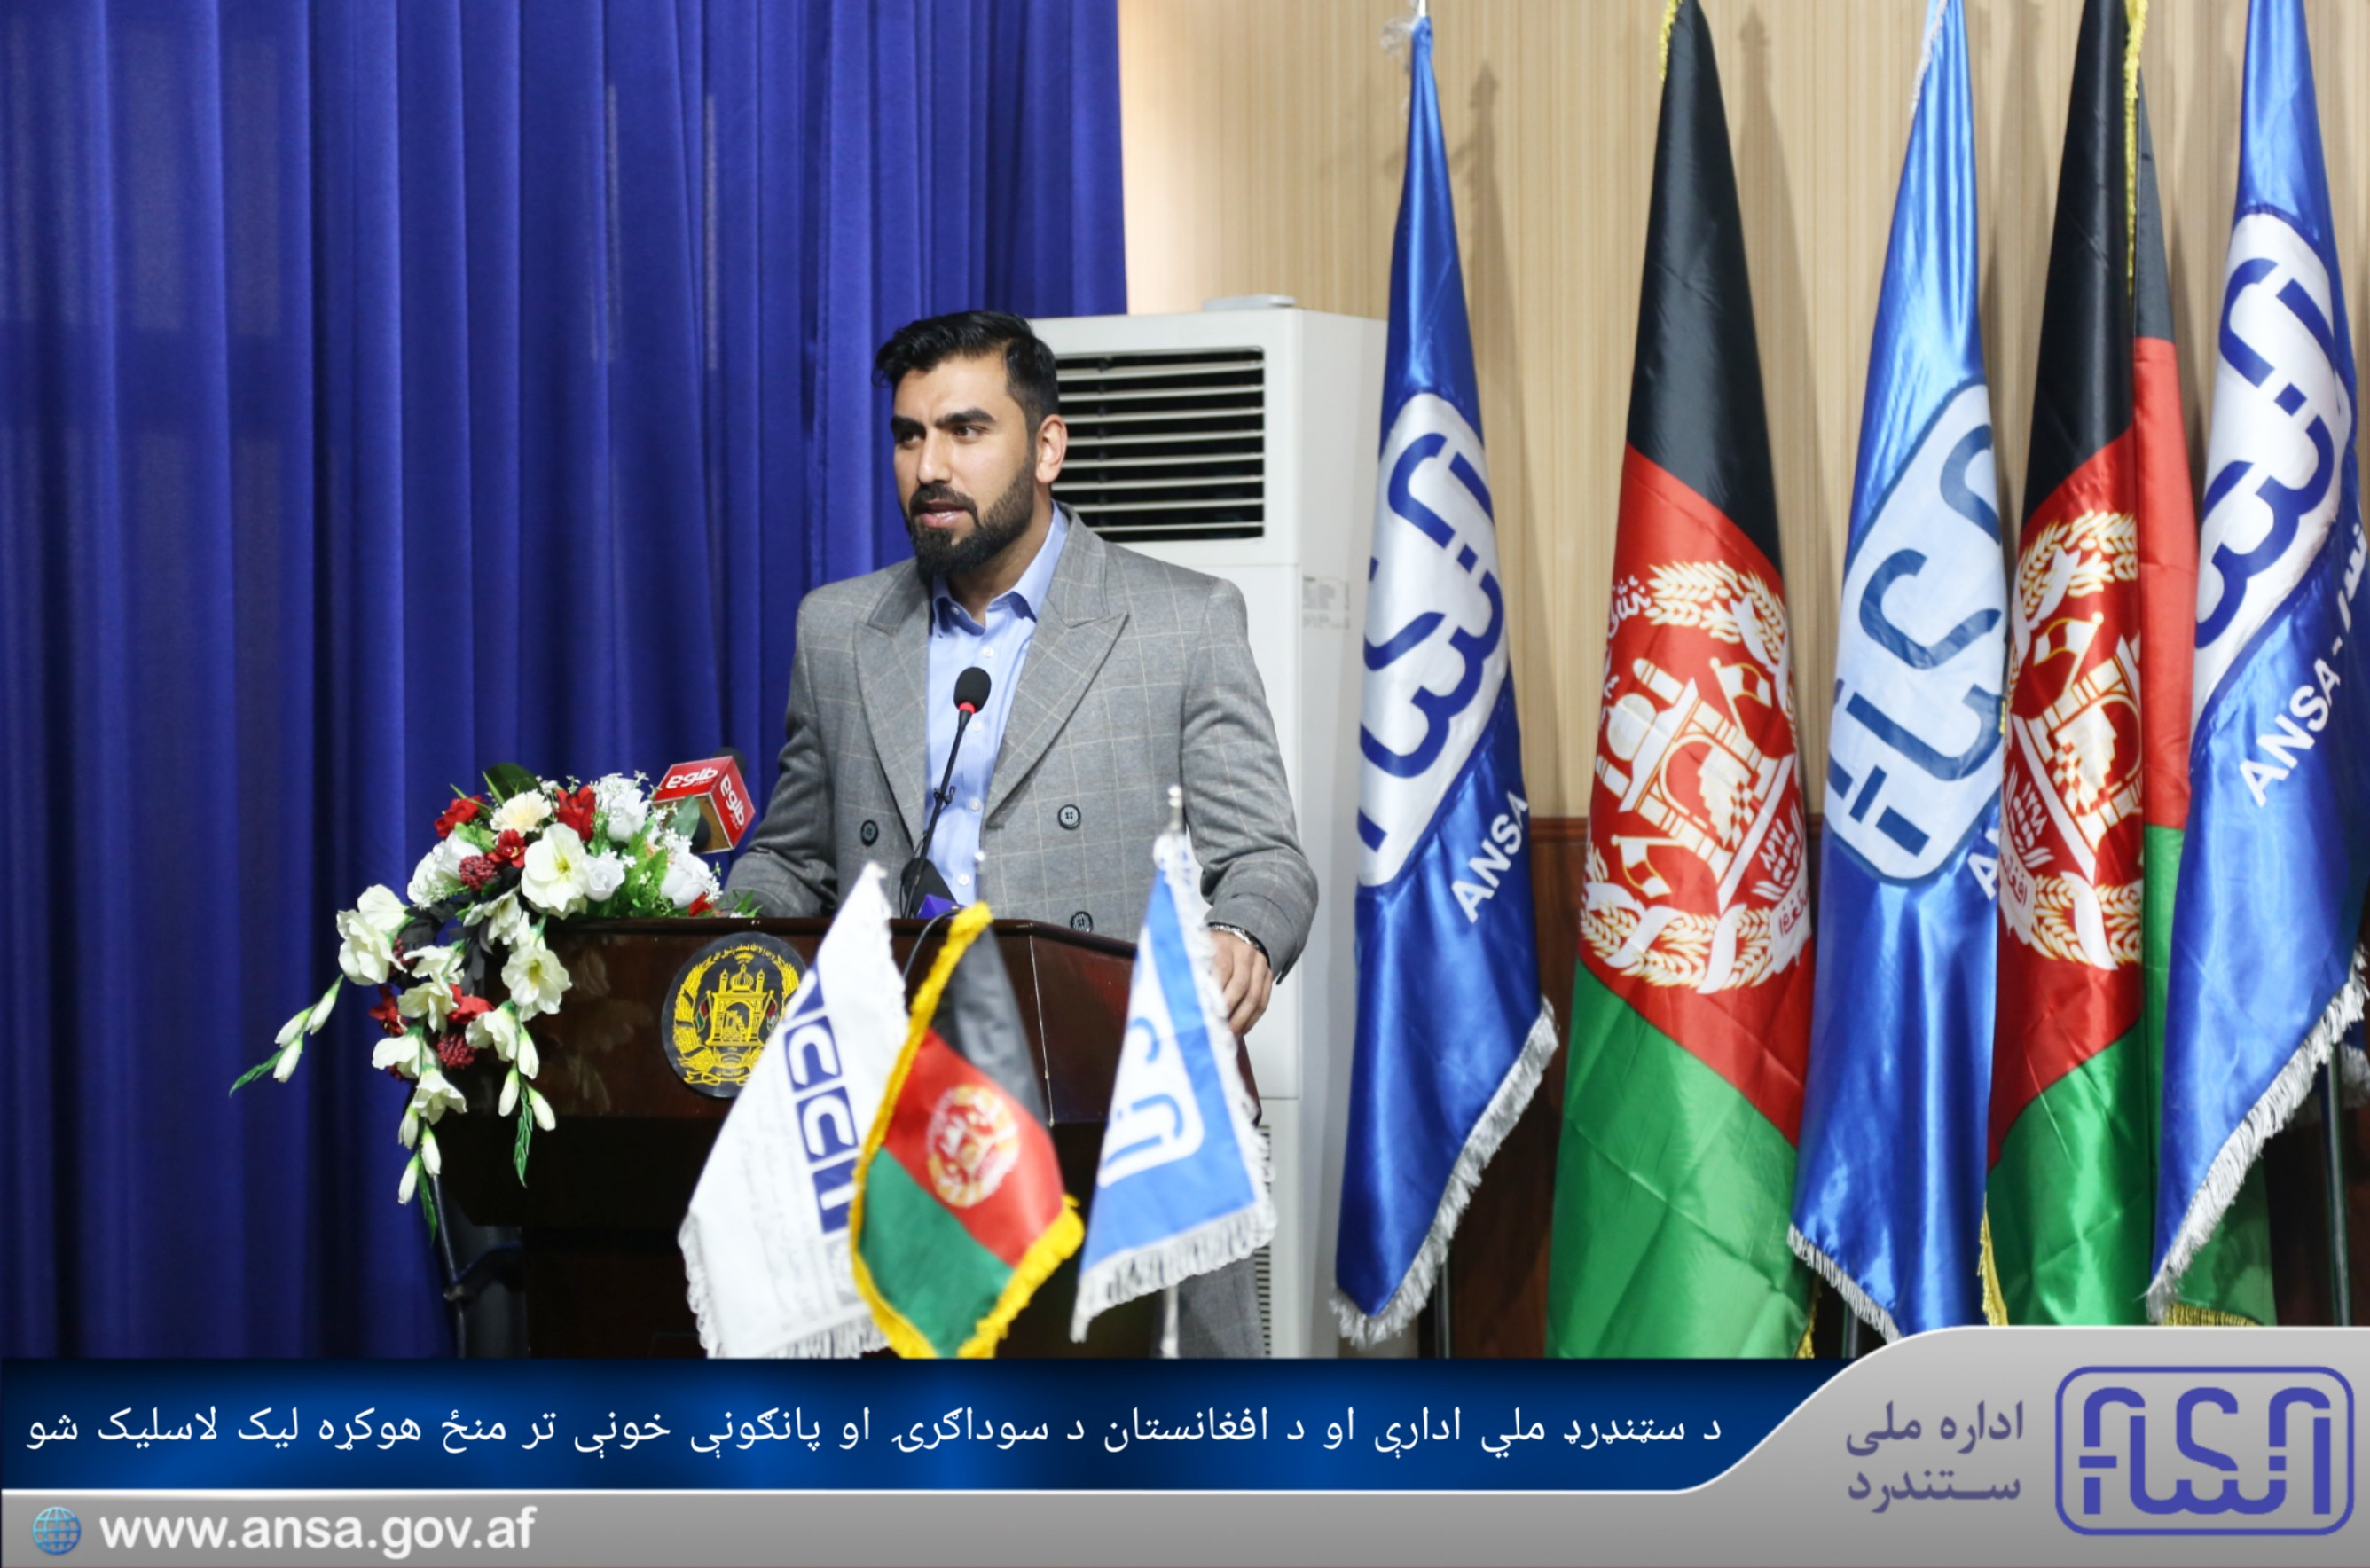 ANSA signed agreement with Afghanistan chamber of commerce and investment.